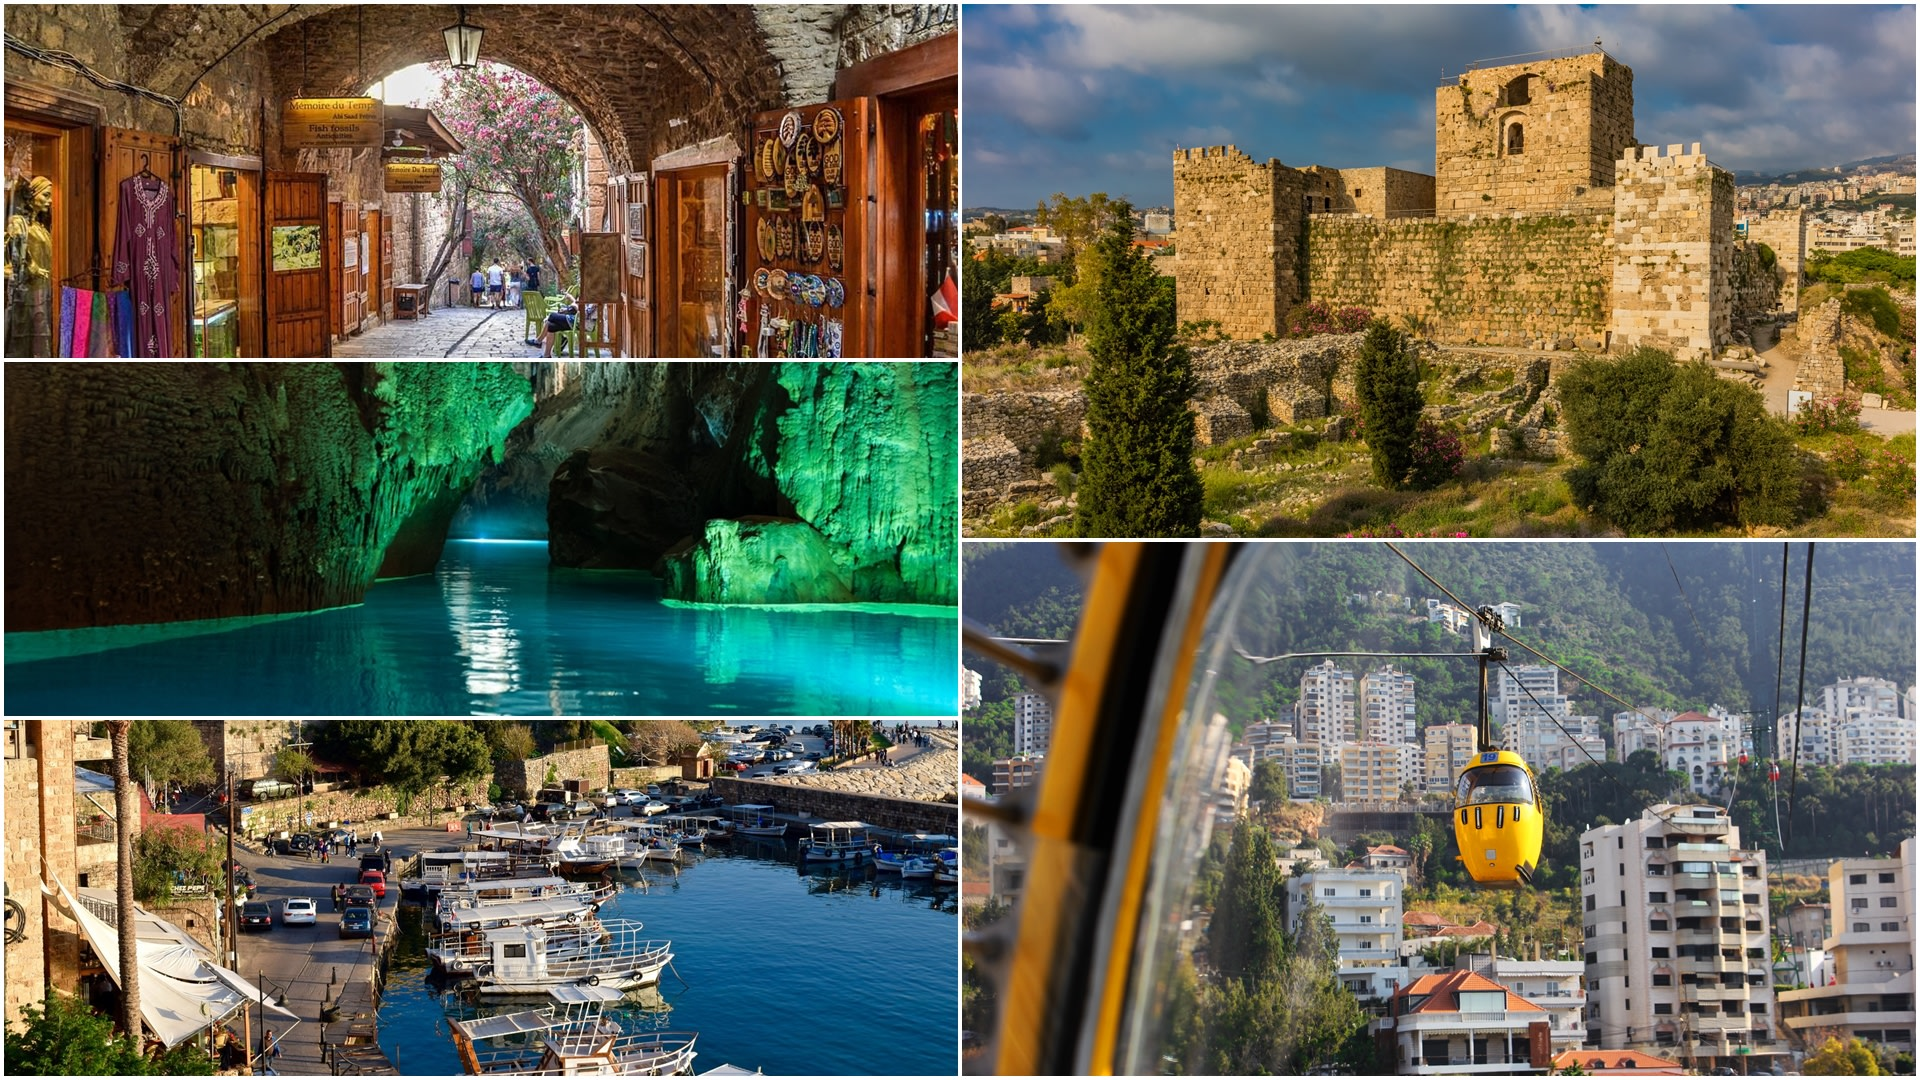 Explore the highlights of Beirut